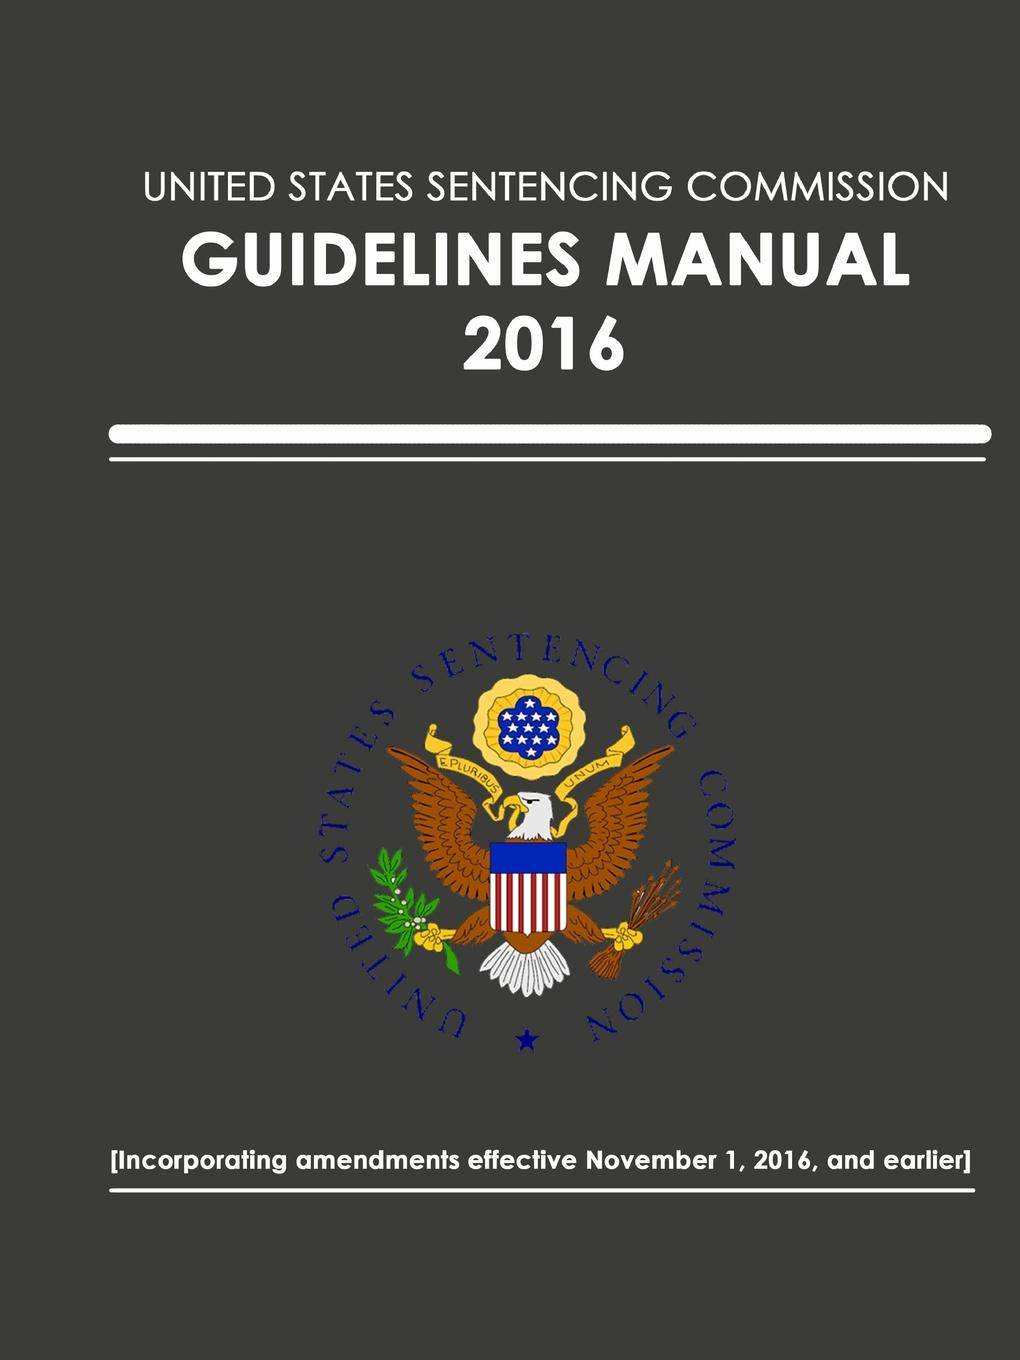 United States Sentencing Commission United States Sentencing Commission - Guidelines Manual - 2016 (Effective November 1, 2016) [zob] the united states bussmann 170m3815 200a 690v fuse original authentic